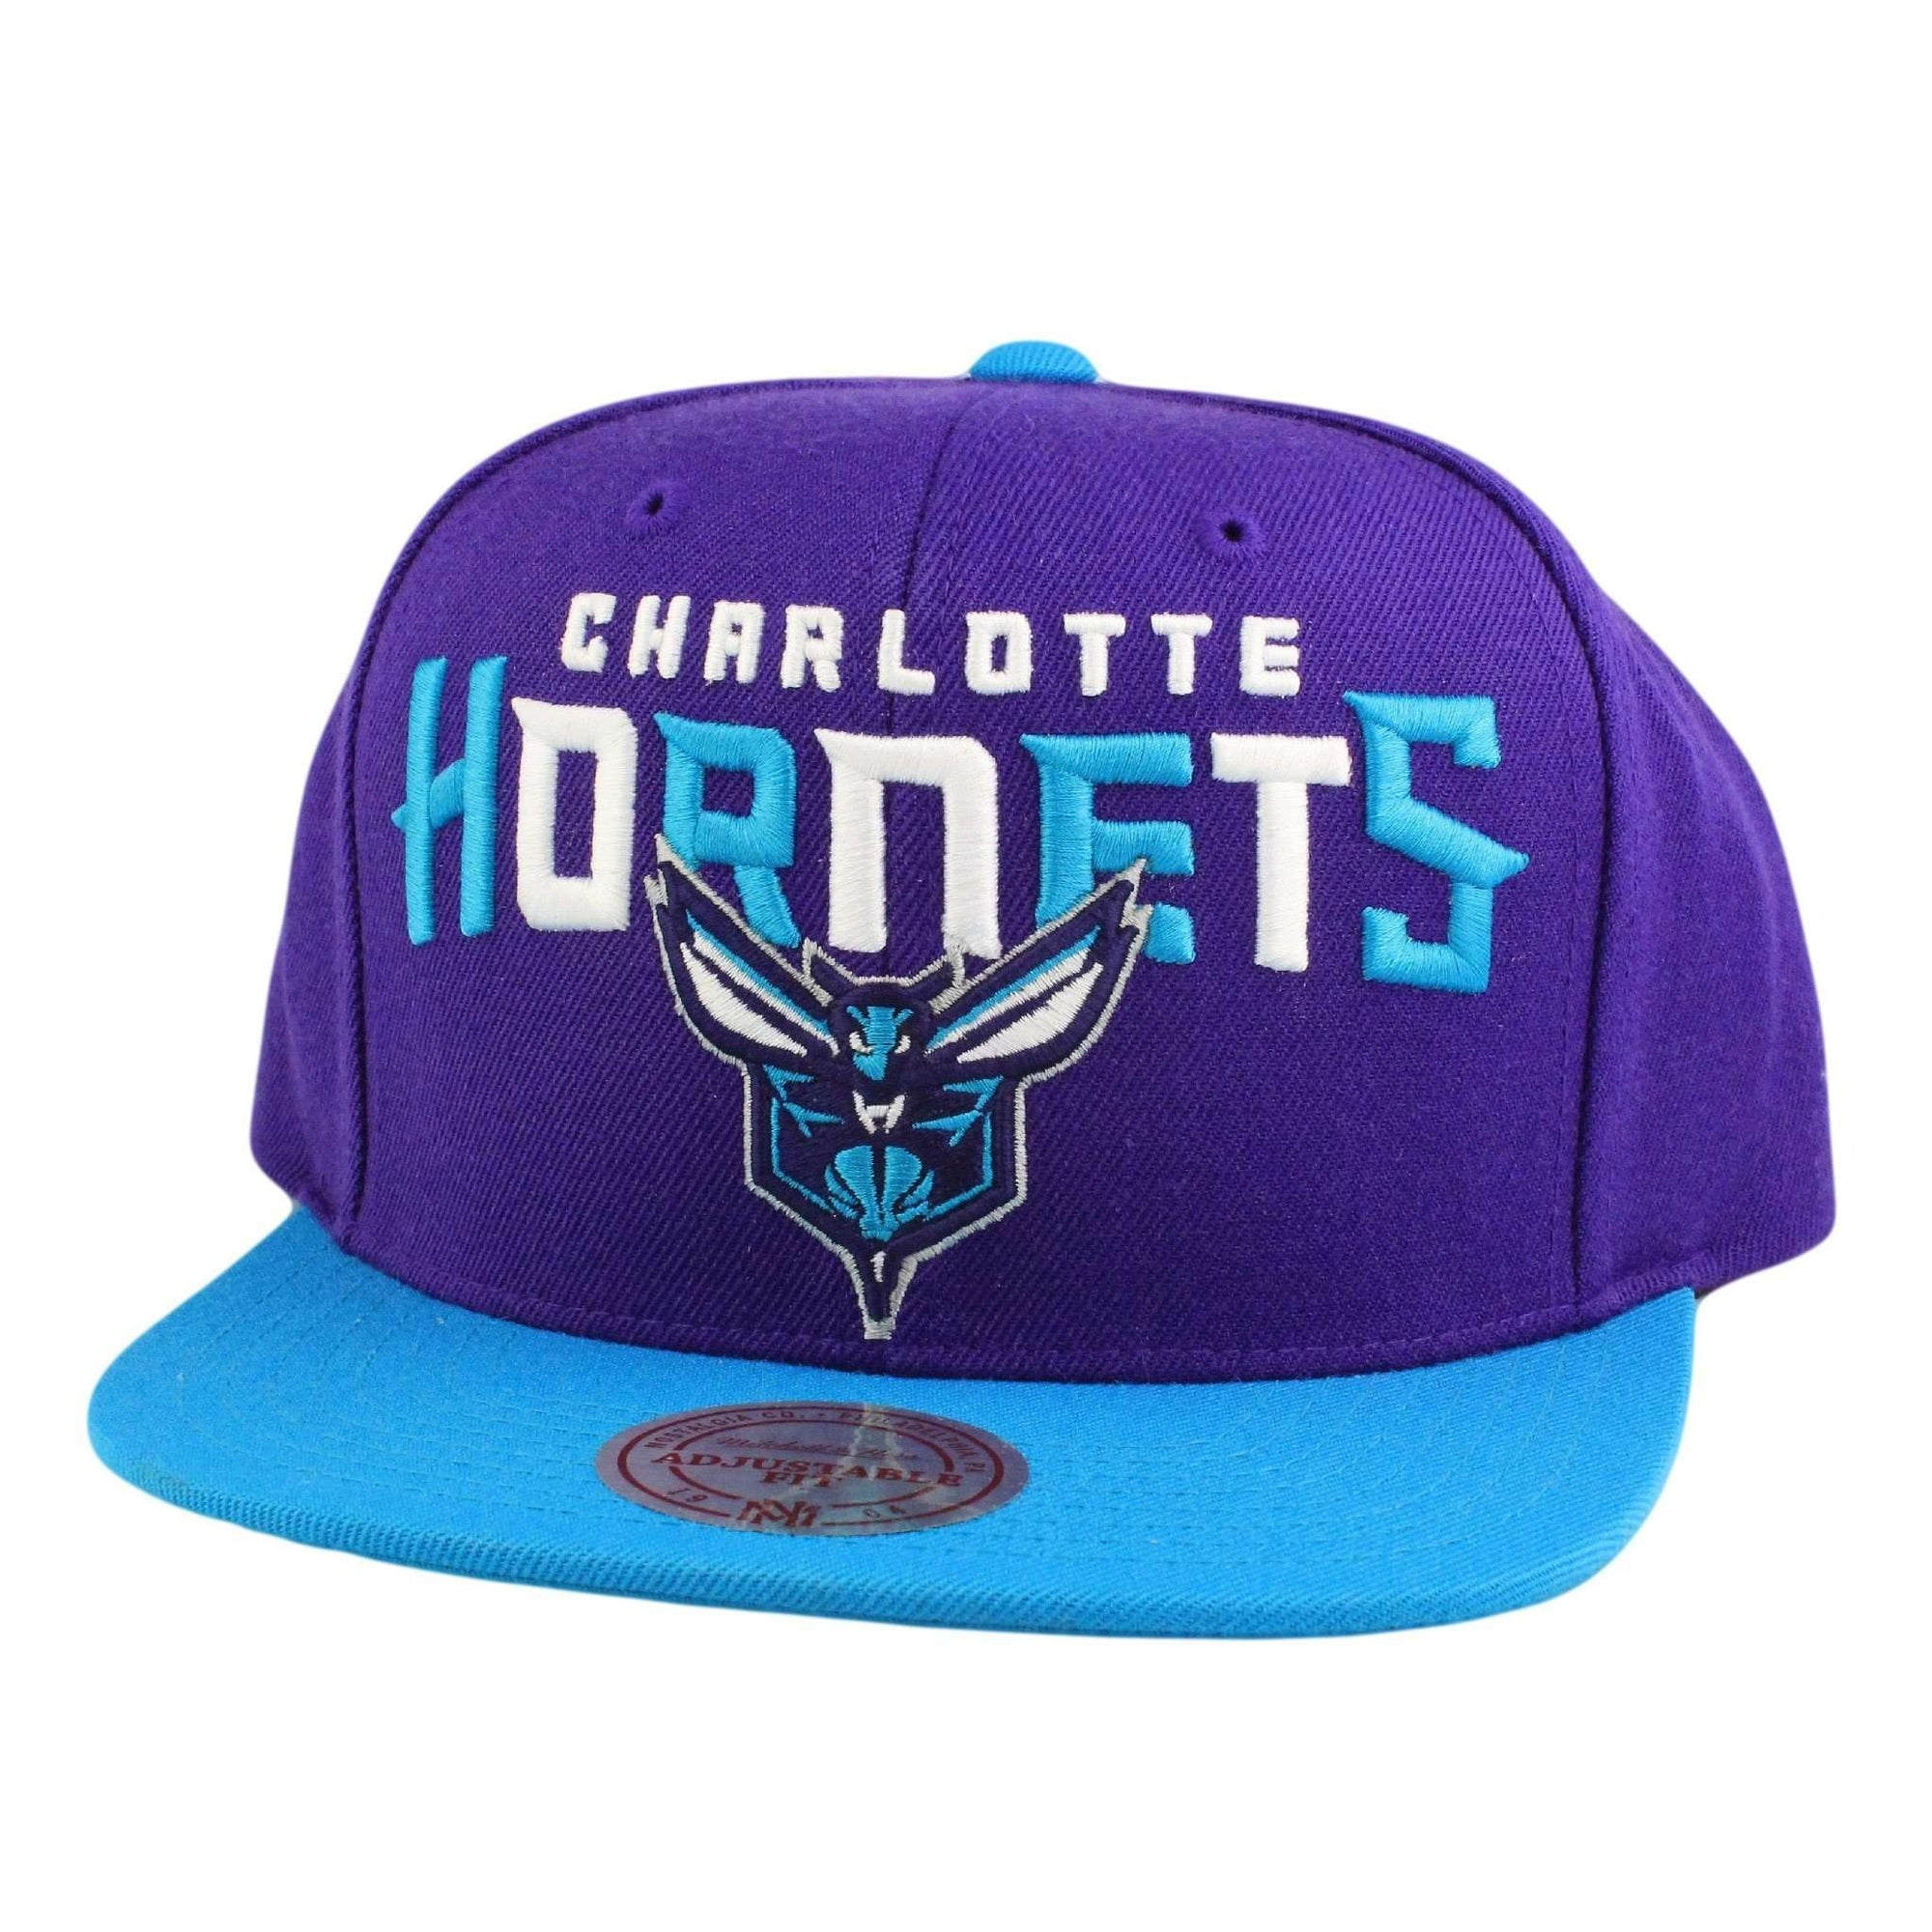 wholesale dealer 6095c 77d80 get charlotte hornets team colors the reverse stack snapback 58c05 b8ee0   cheap mitchell and ness charlotte hornets tri pop wordmark purple blue  snapback ...